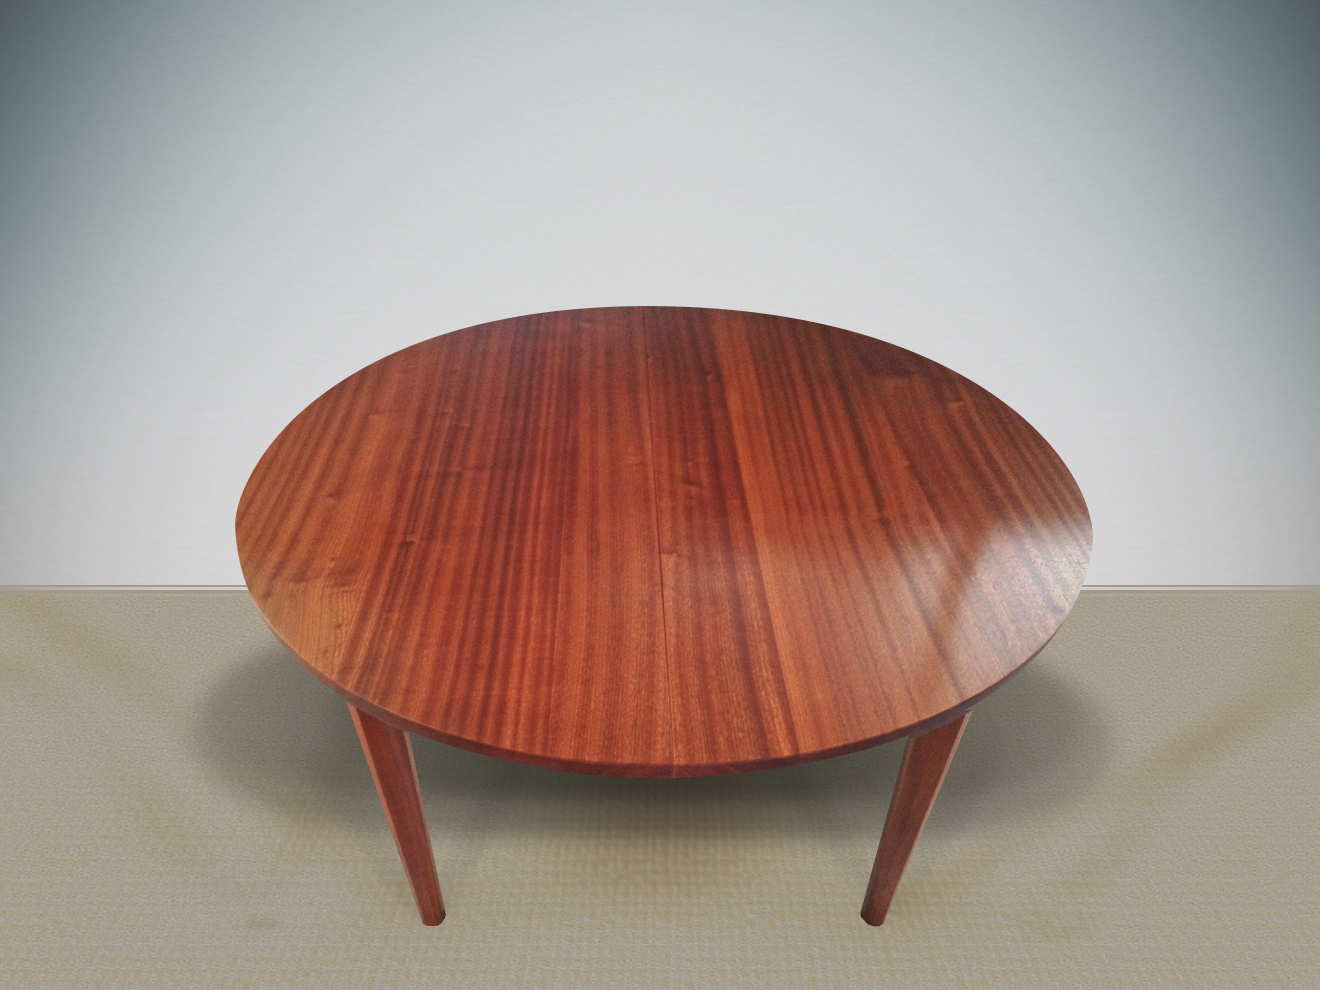 "Round Extension Dining Table Ribbon-stripe Sapele, Ebony pegs, mortise and tenon construction, hand-planed tapered legs 30""h × 48""dia., leaf is 24""w and includes apron"